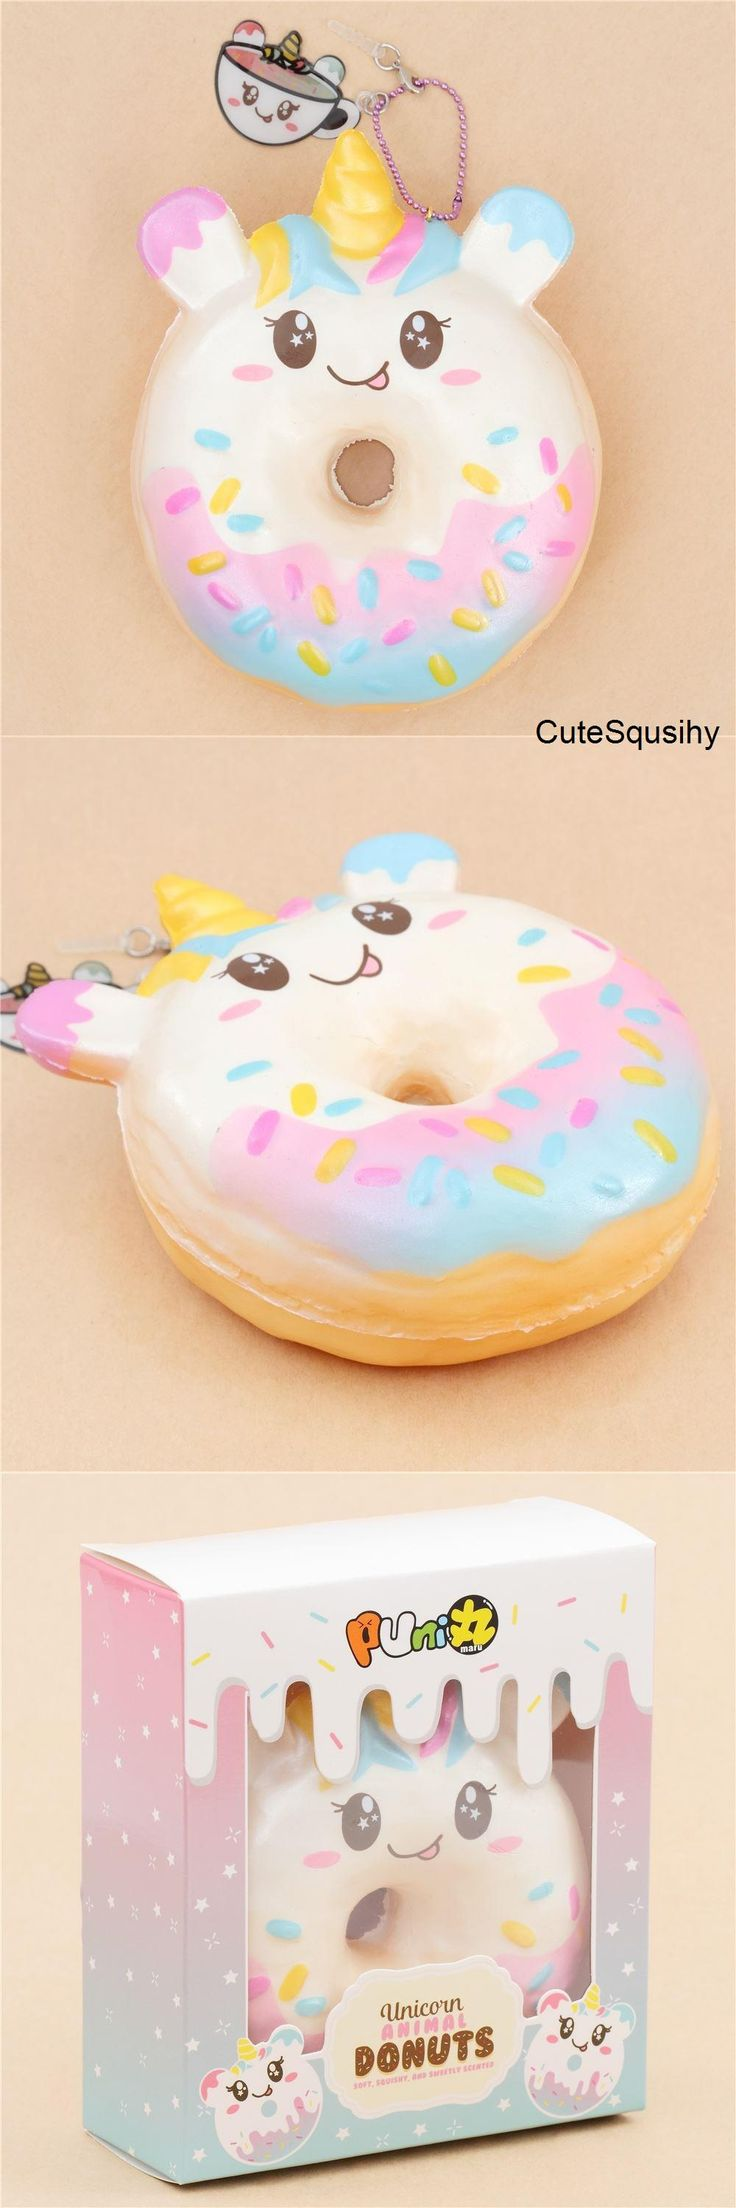 Squishy Donut Unicorn : Best 25+ Unicorns ideas on Pinterest Cute unicorn, Unicorn and Unicorns wallpaper